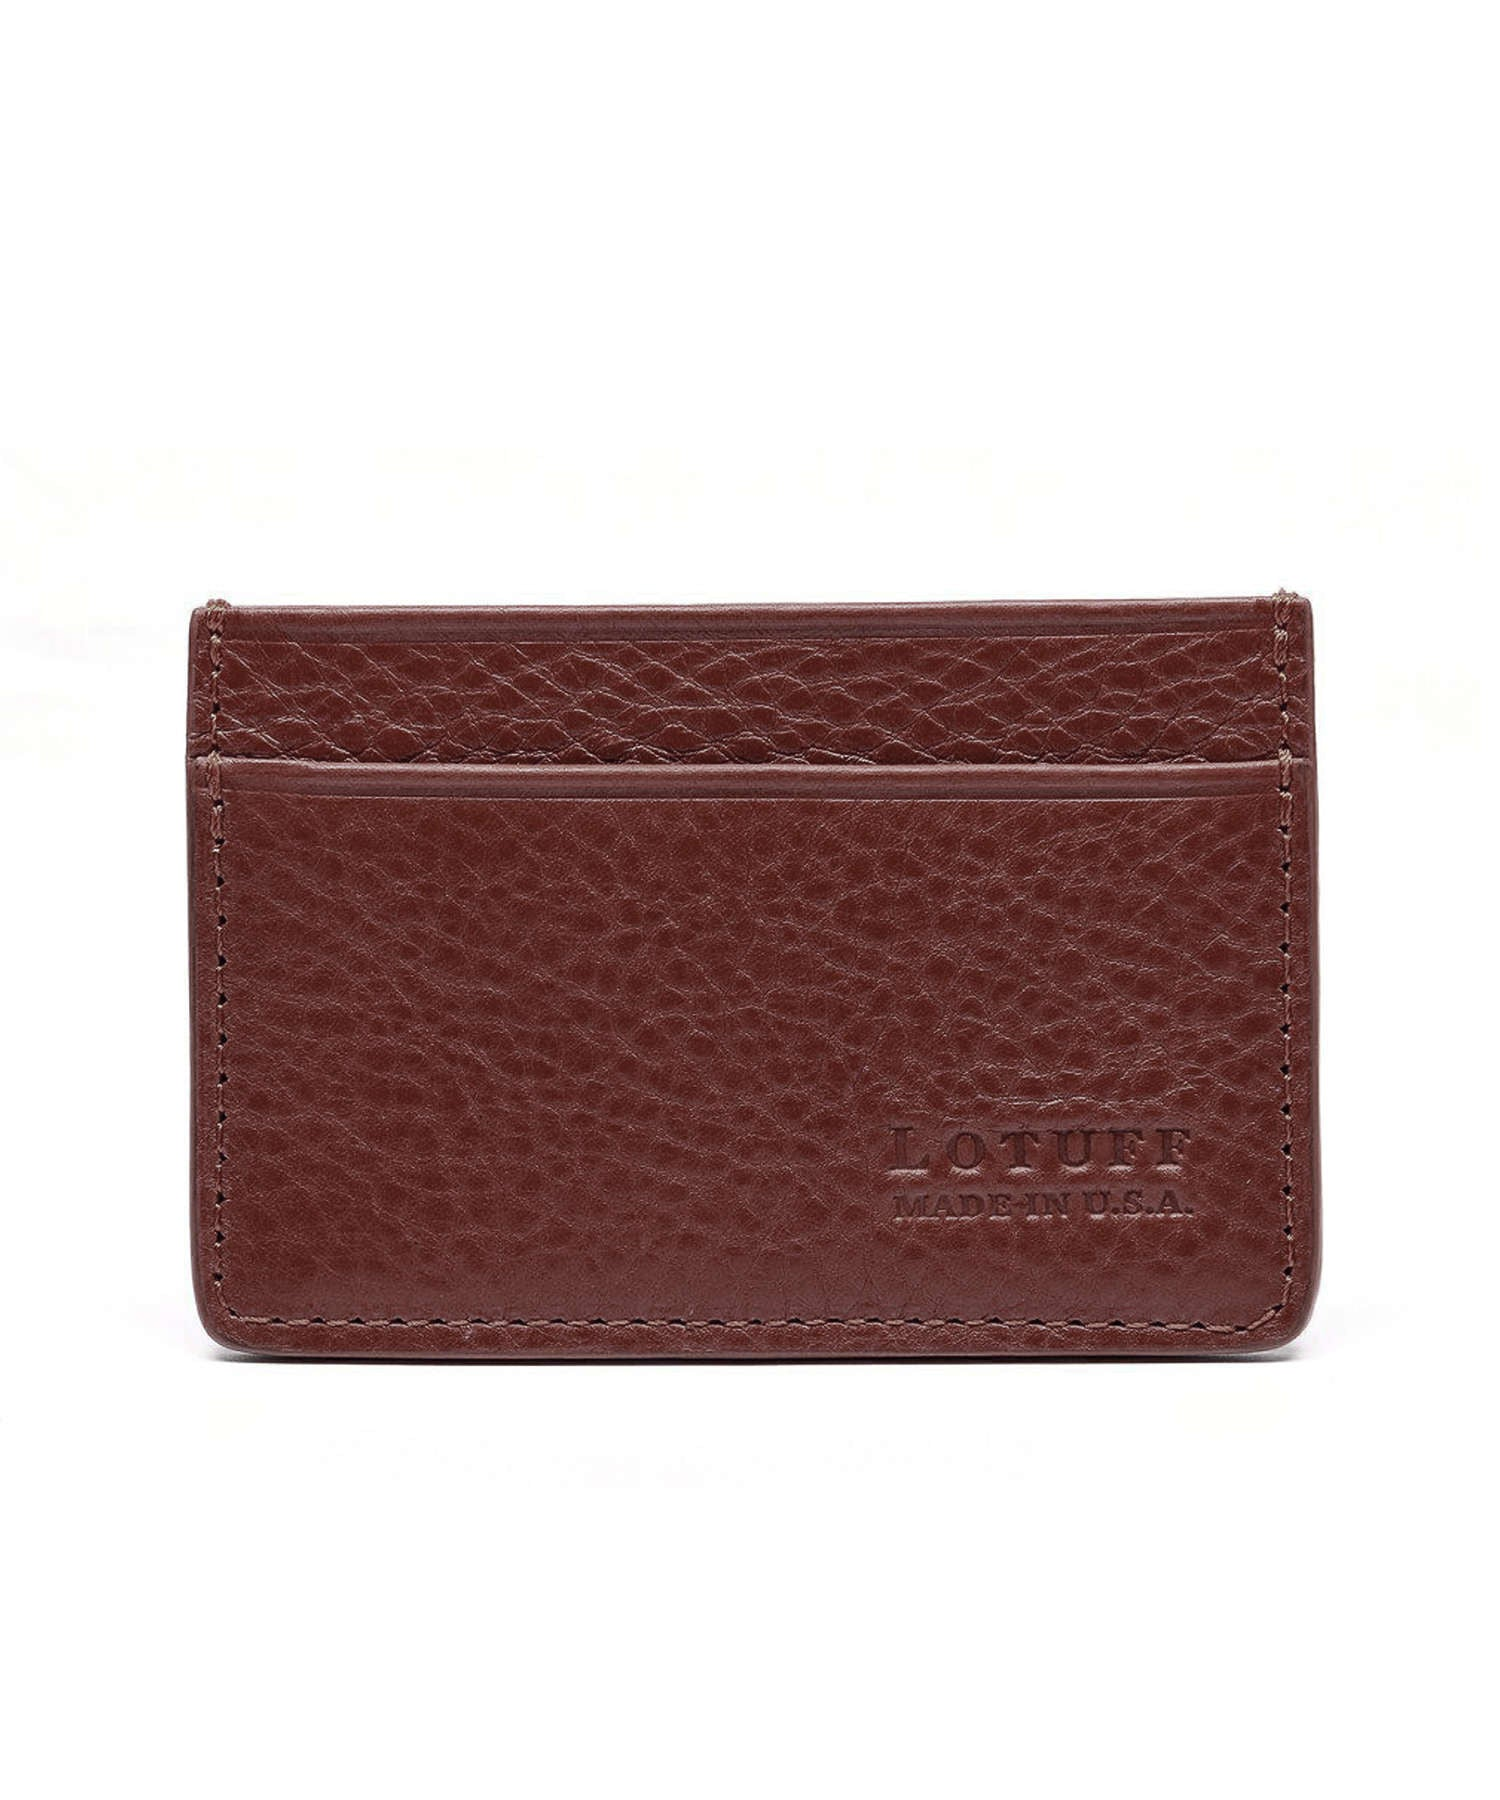 Lotuff Chestnut Leather Credit Card Wallet